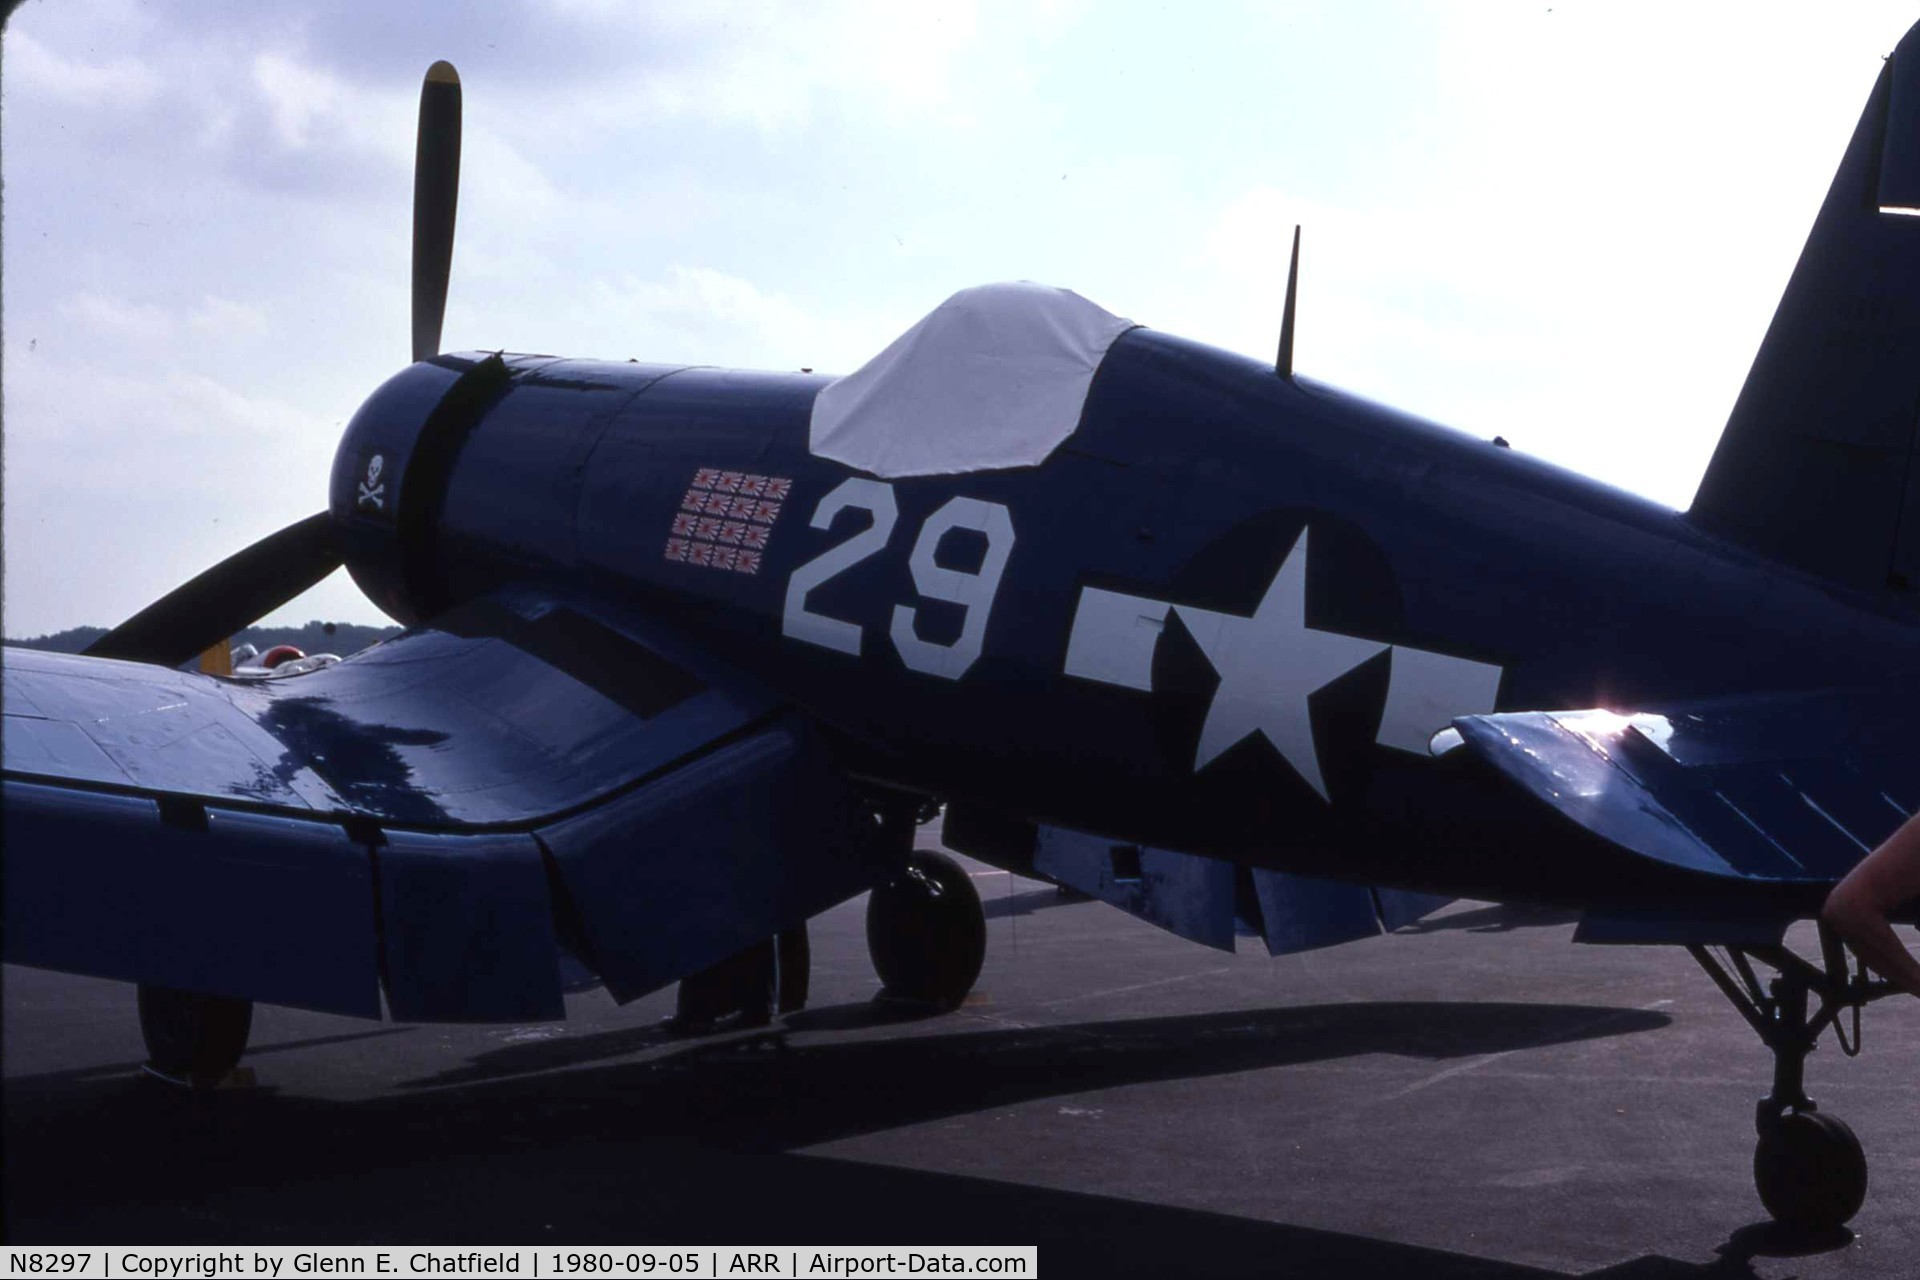 N8297, 1945 Goodyear FG-1D Corsair C/N 3111, Old paint scheme when still N8297